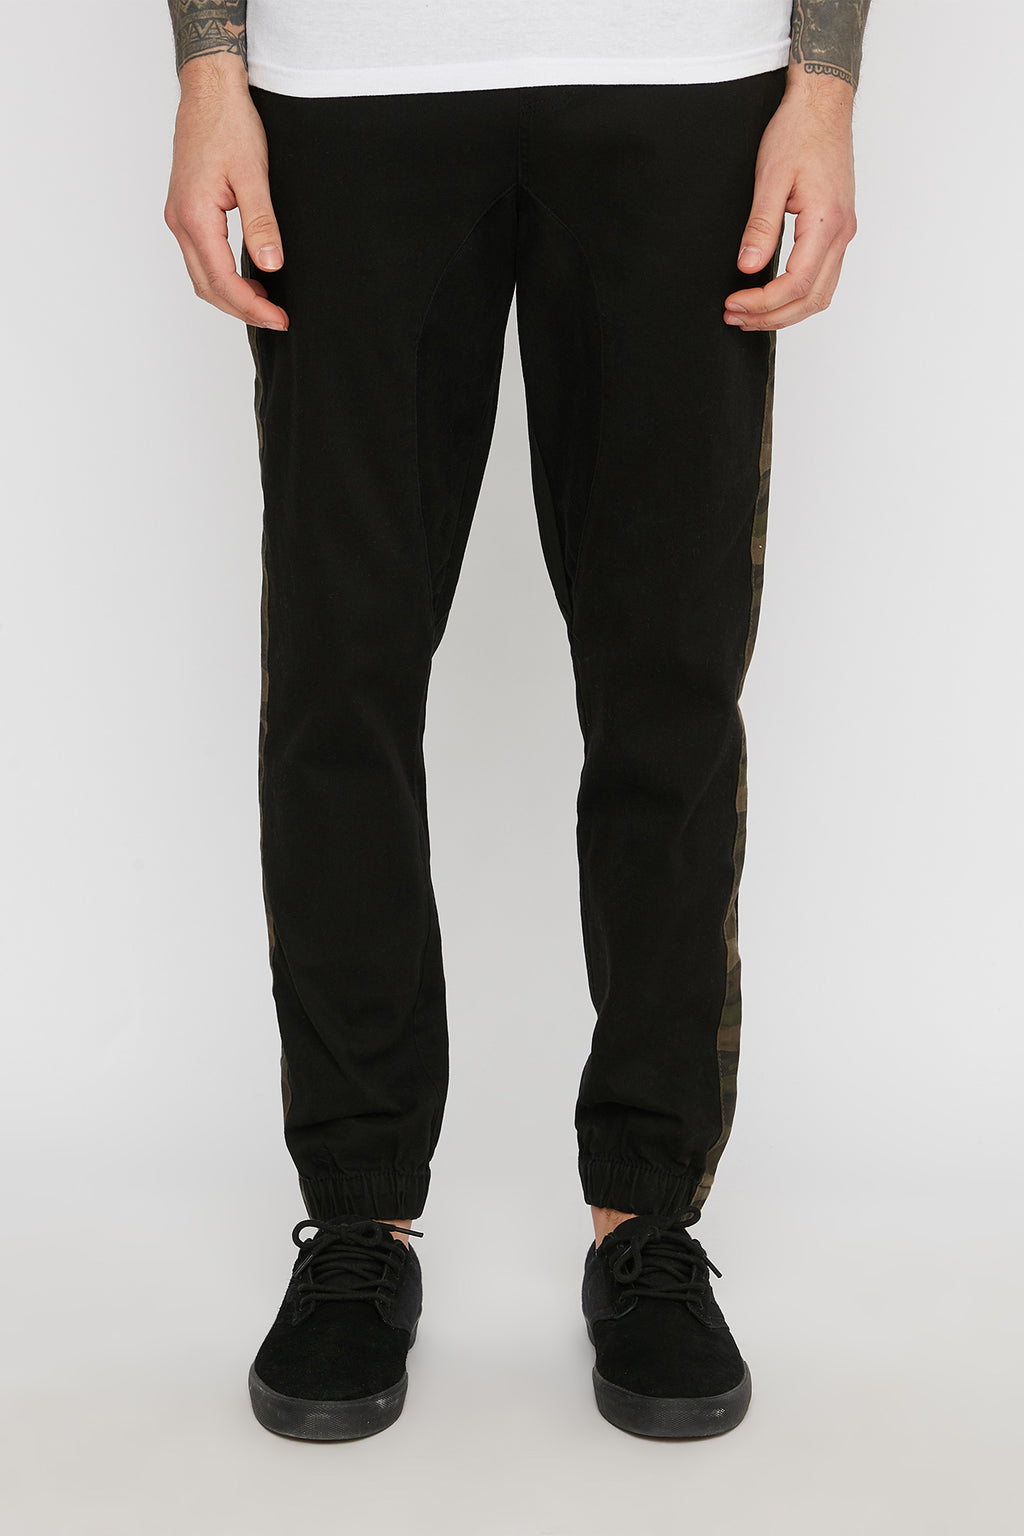 Zoo York Mens Side Tape Jogger